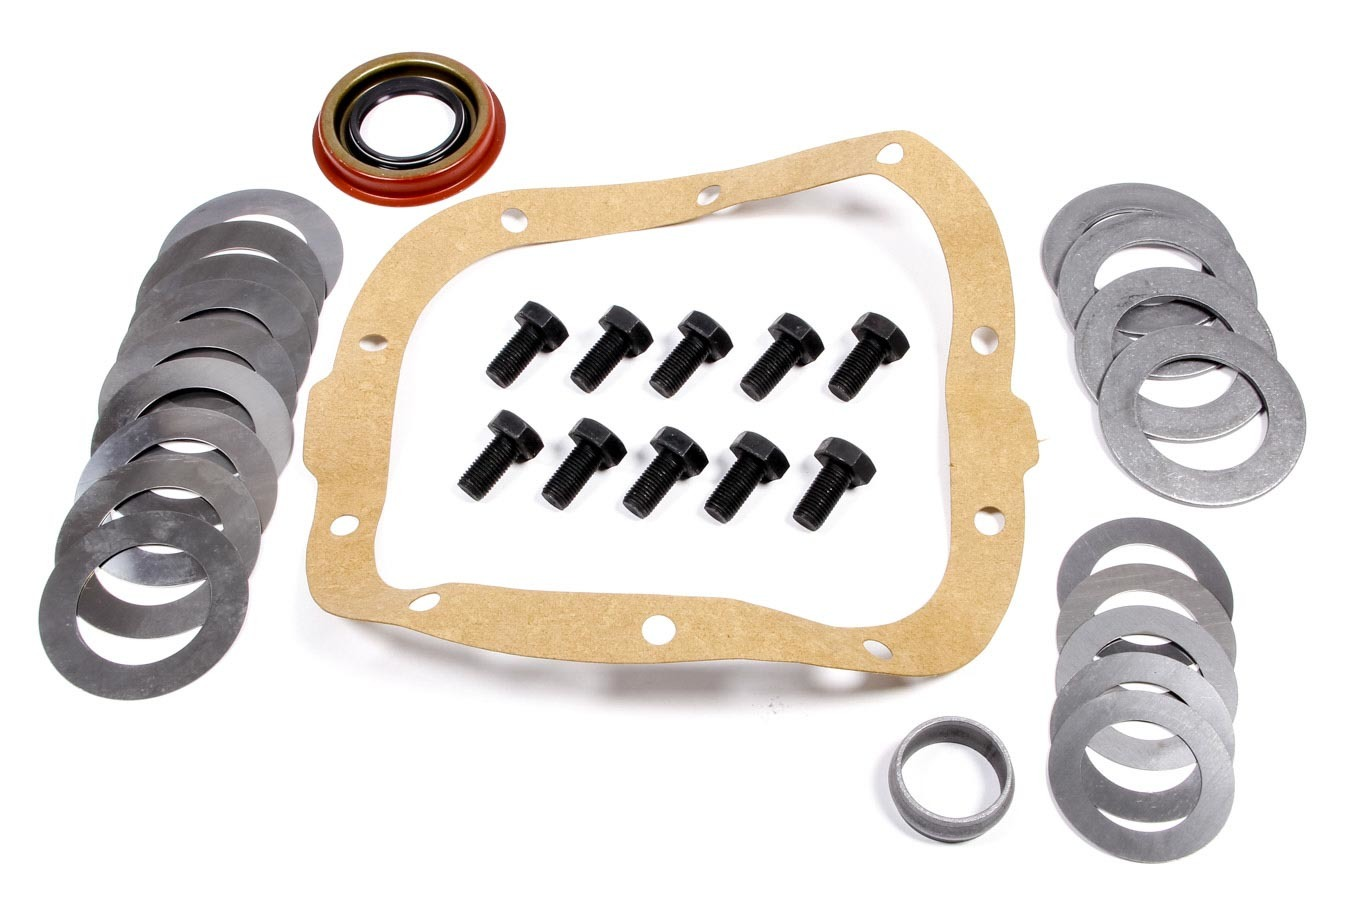 Ratech 108K Differential Installation Kit, Crush Sleeve / Gaskets / Hardware / Seals / Shims, 7.5 in / 7.625 in, GM 10-Bolt, Kit